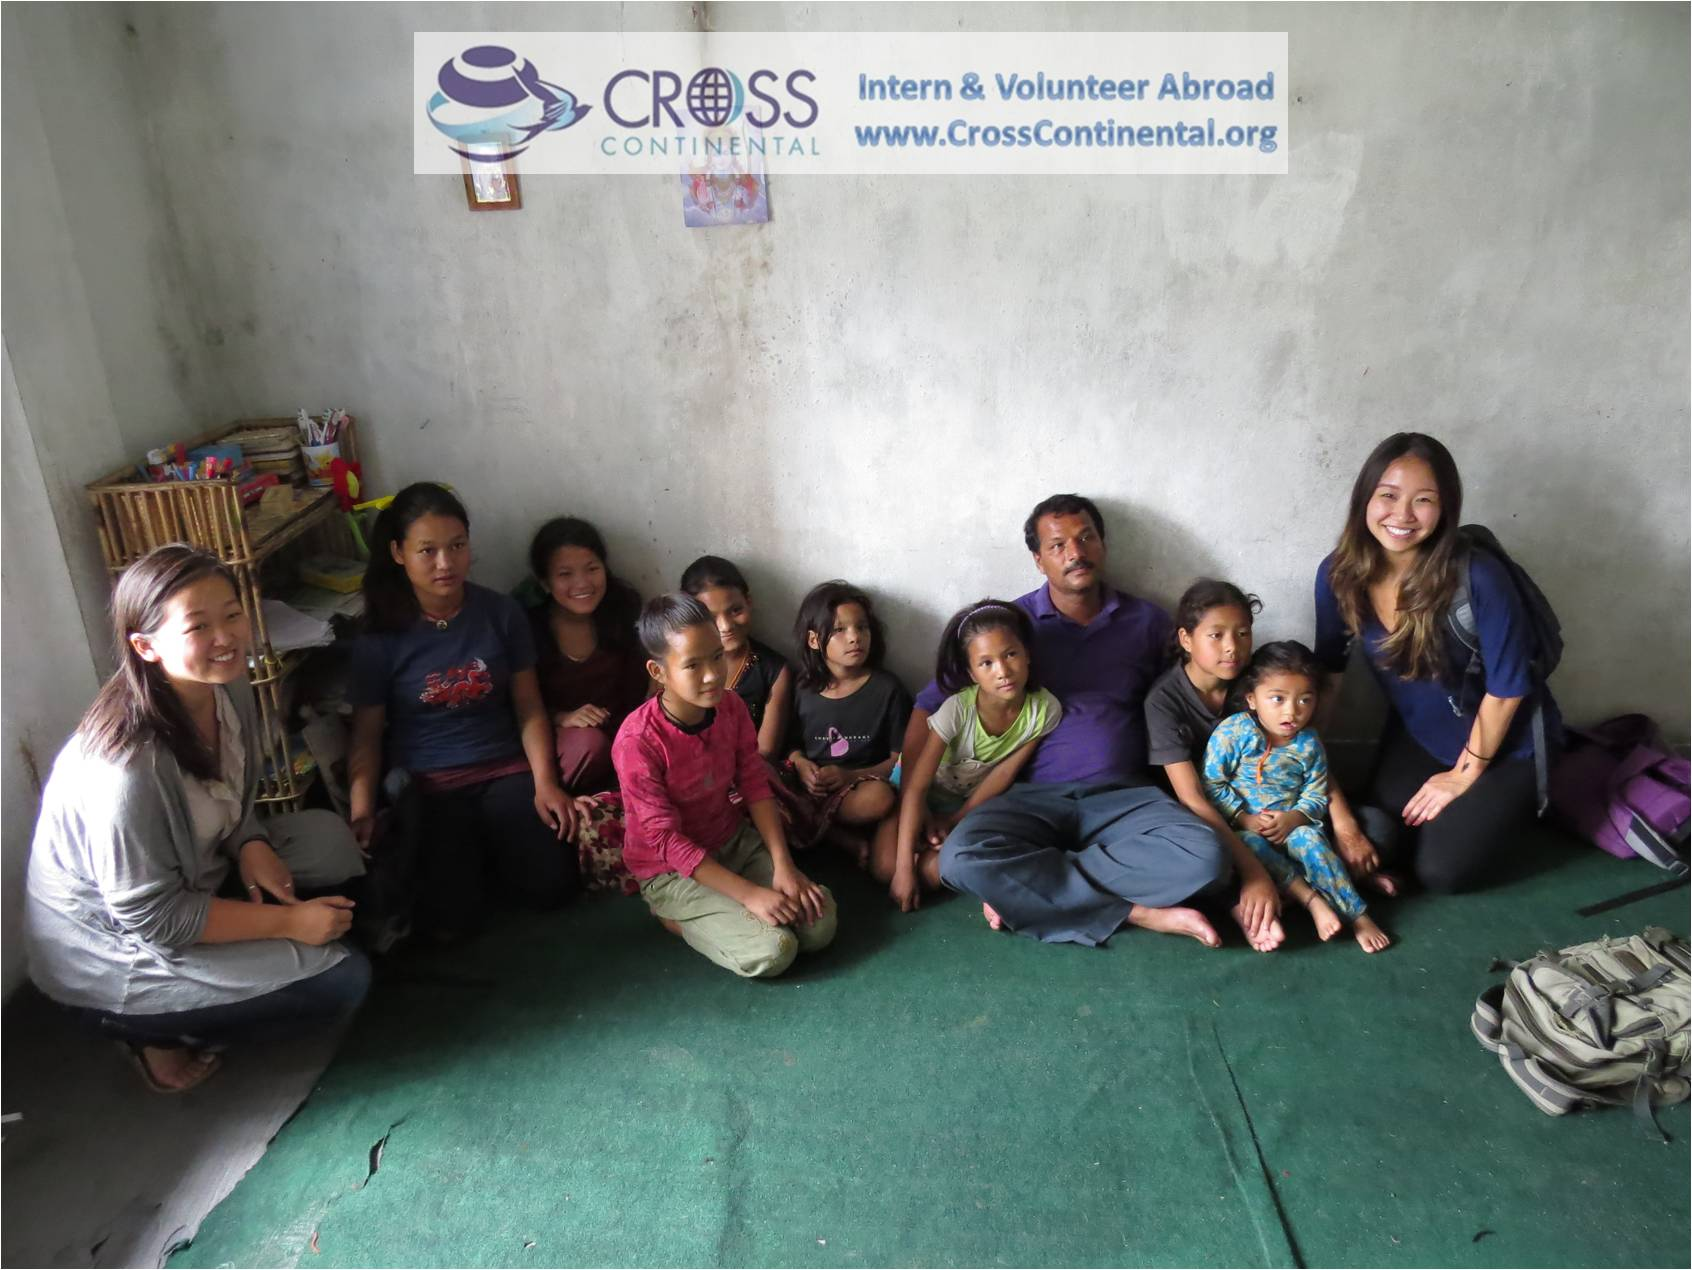 international internships and volunteer abroad Asia-Nepal, intern abroad, healthcare work, orphanage visit